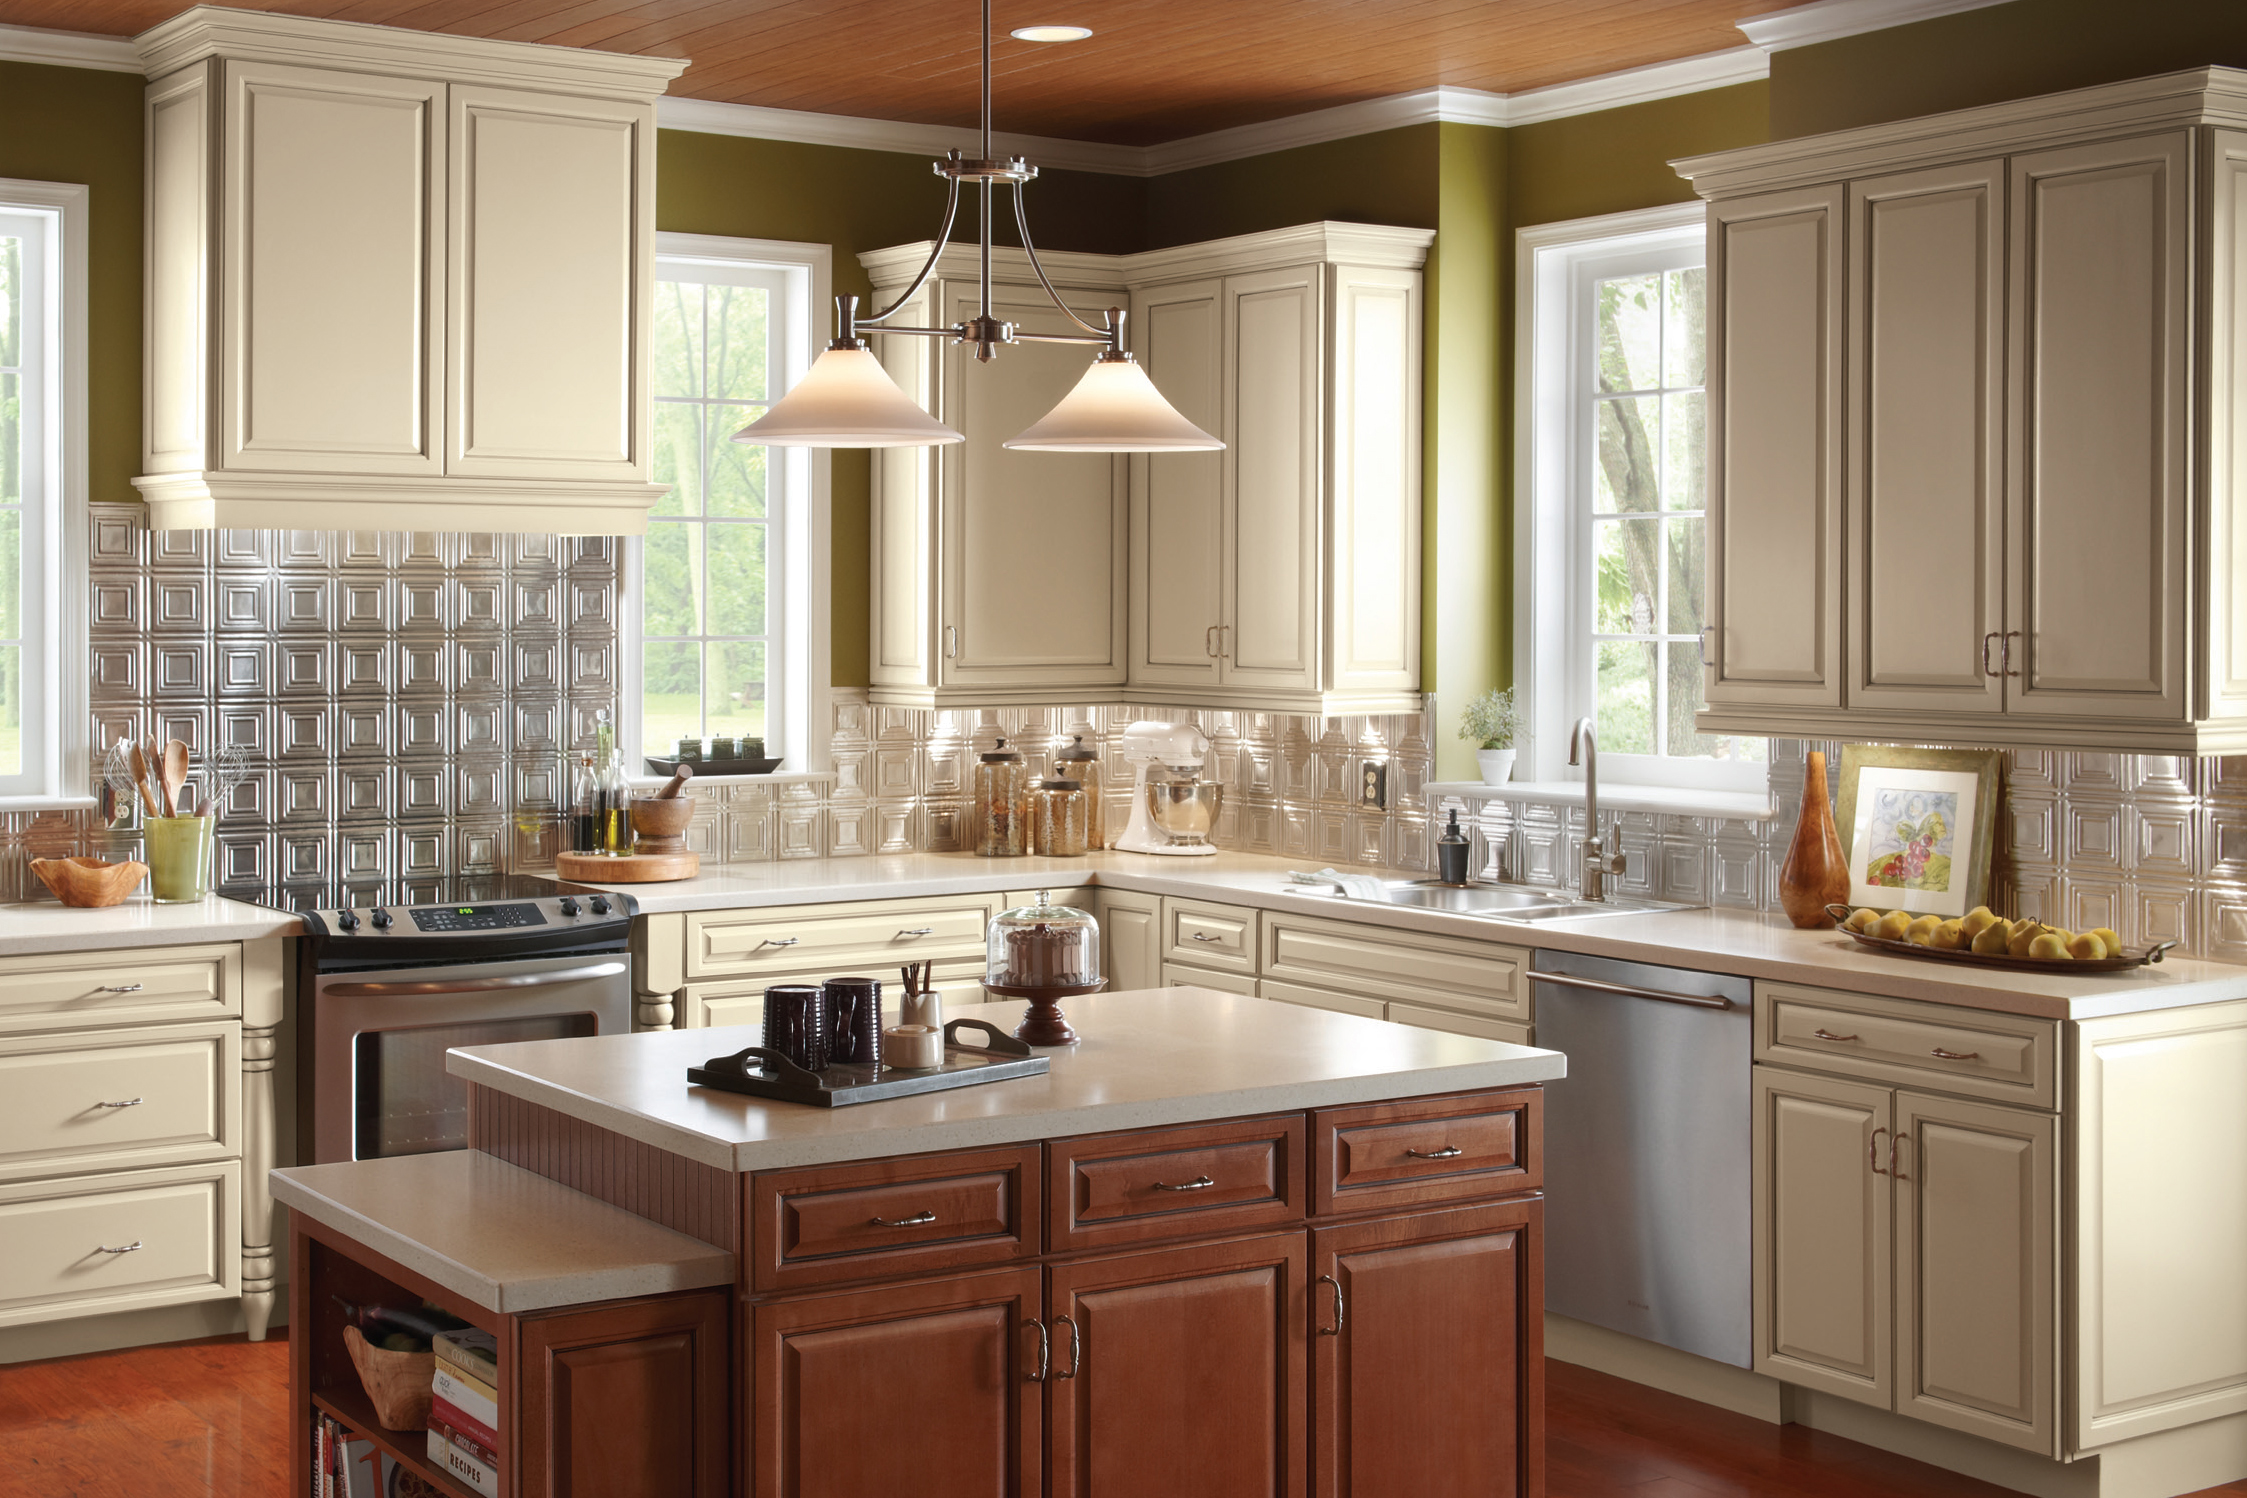 Interior Armstrong Kitchen Cabinets Reviews former armstrong cabinets relaunched in new echelon advanta brands remodeling kitchen cabinets